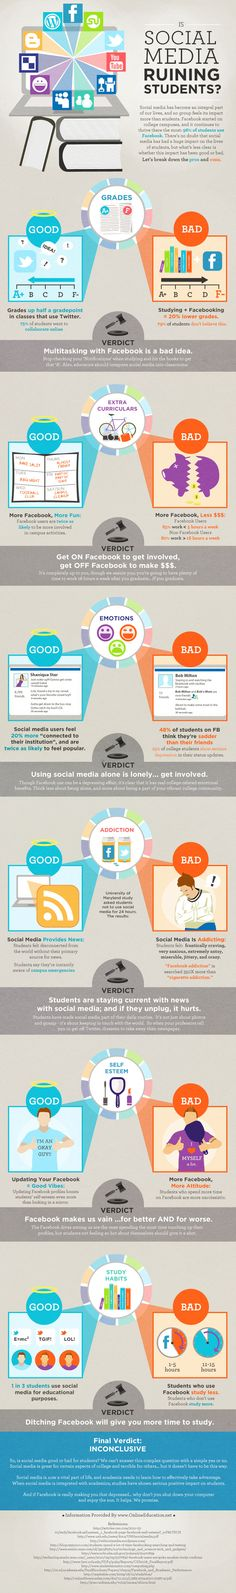 Does Facebook make you a better student?